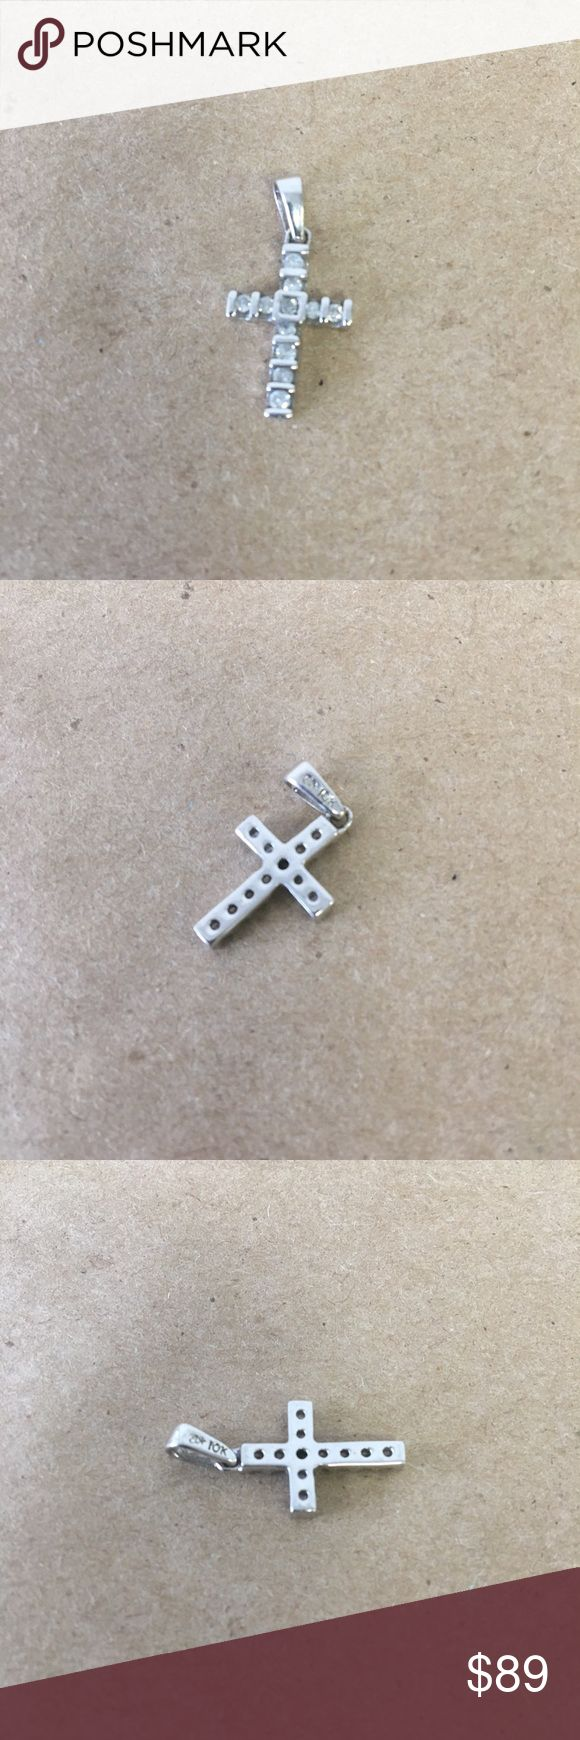 10k Solid White Gold Cross Pendant W/ 11 Diamonds! 10k Solid White Gold Cross Pendant With 11 Diamonds - 1.61g Inventory #  5930-11 Everything we sell is 100% guaranteed authentic! We list dozens of items every day, so check our other listings out! We are Meta Exchange, a resale store in Baton Rouge, LA! Sorry, no trades. REASONABLE offers will be considered. We ship same/next day. Thanks! Follow us: FB metaexchange  IG meta225 gold Jewelry Necklaces